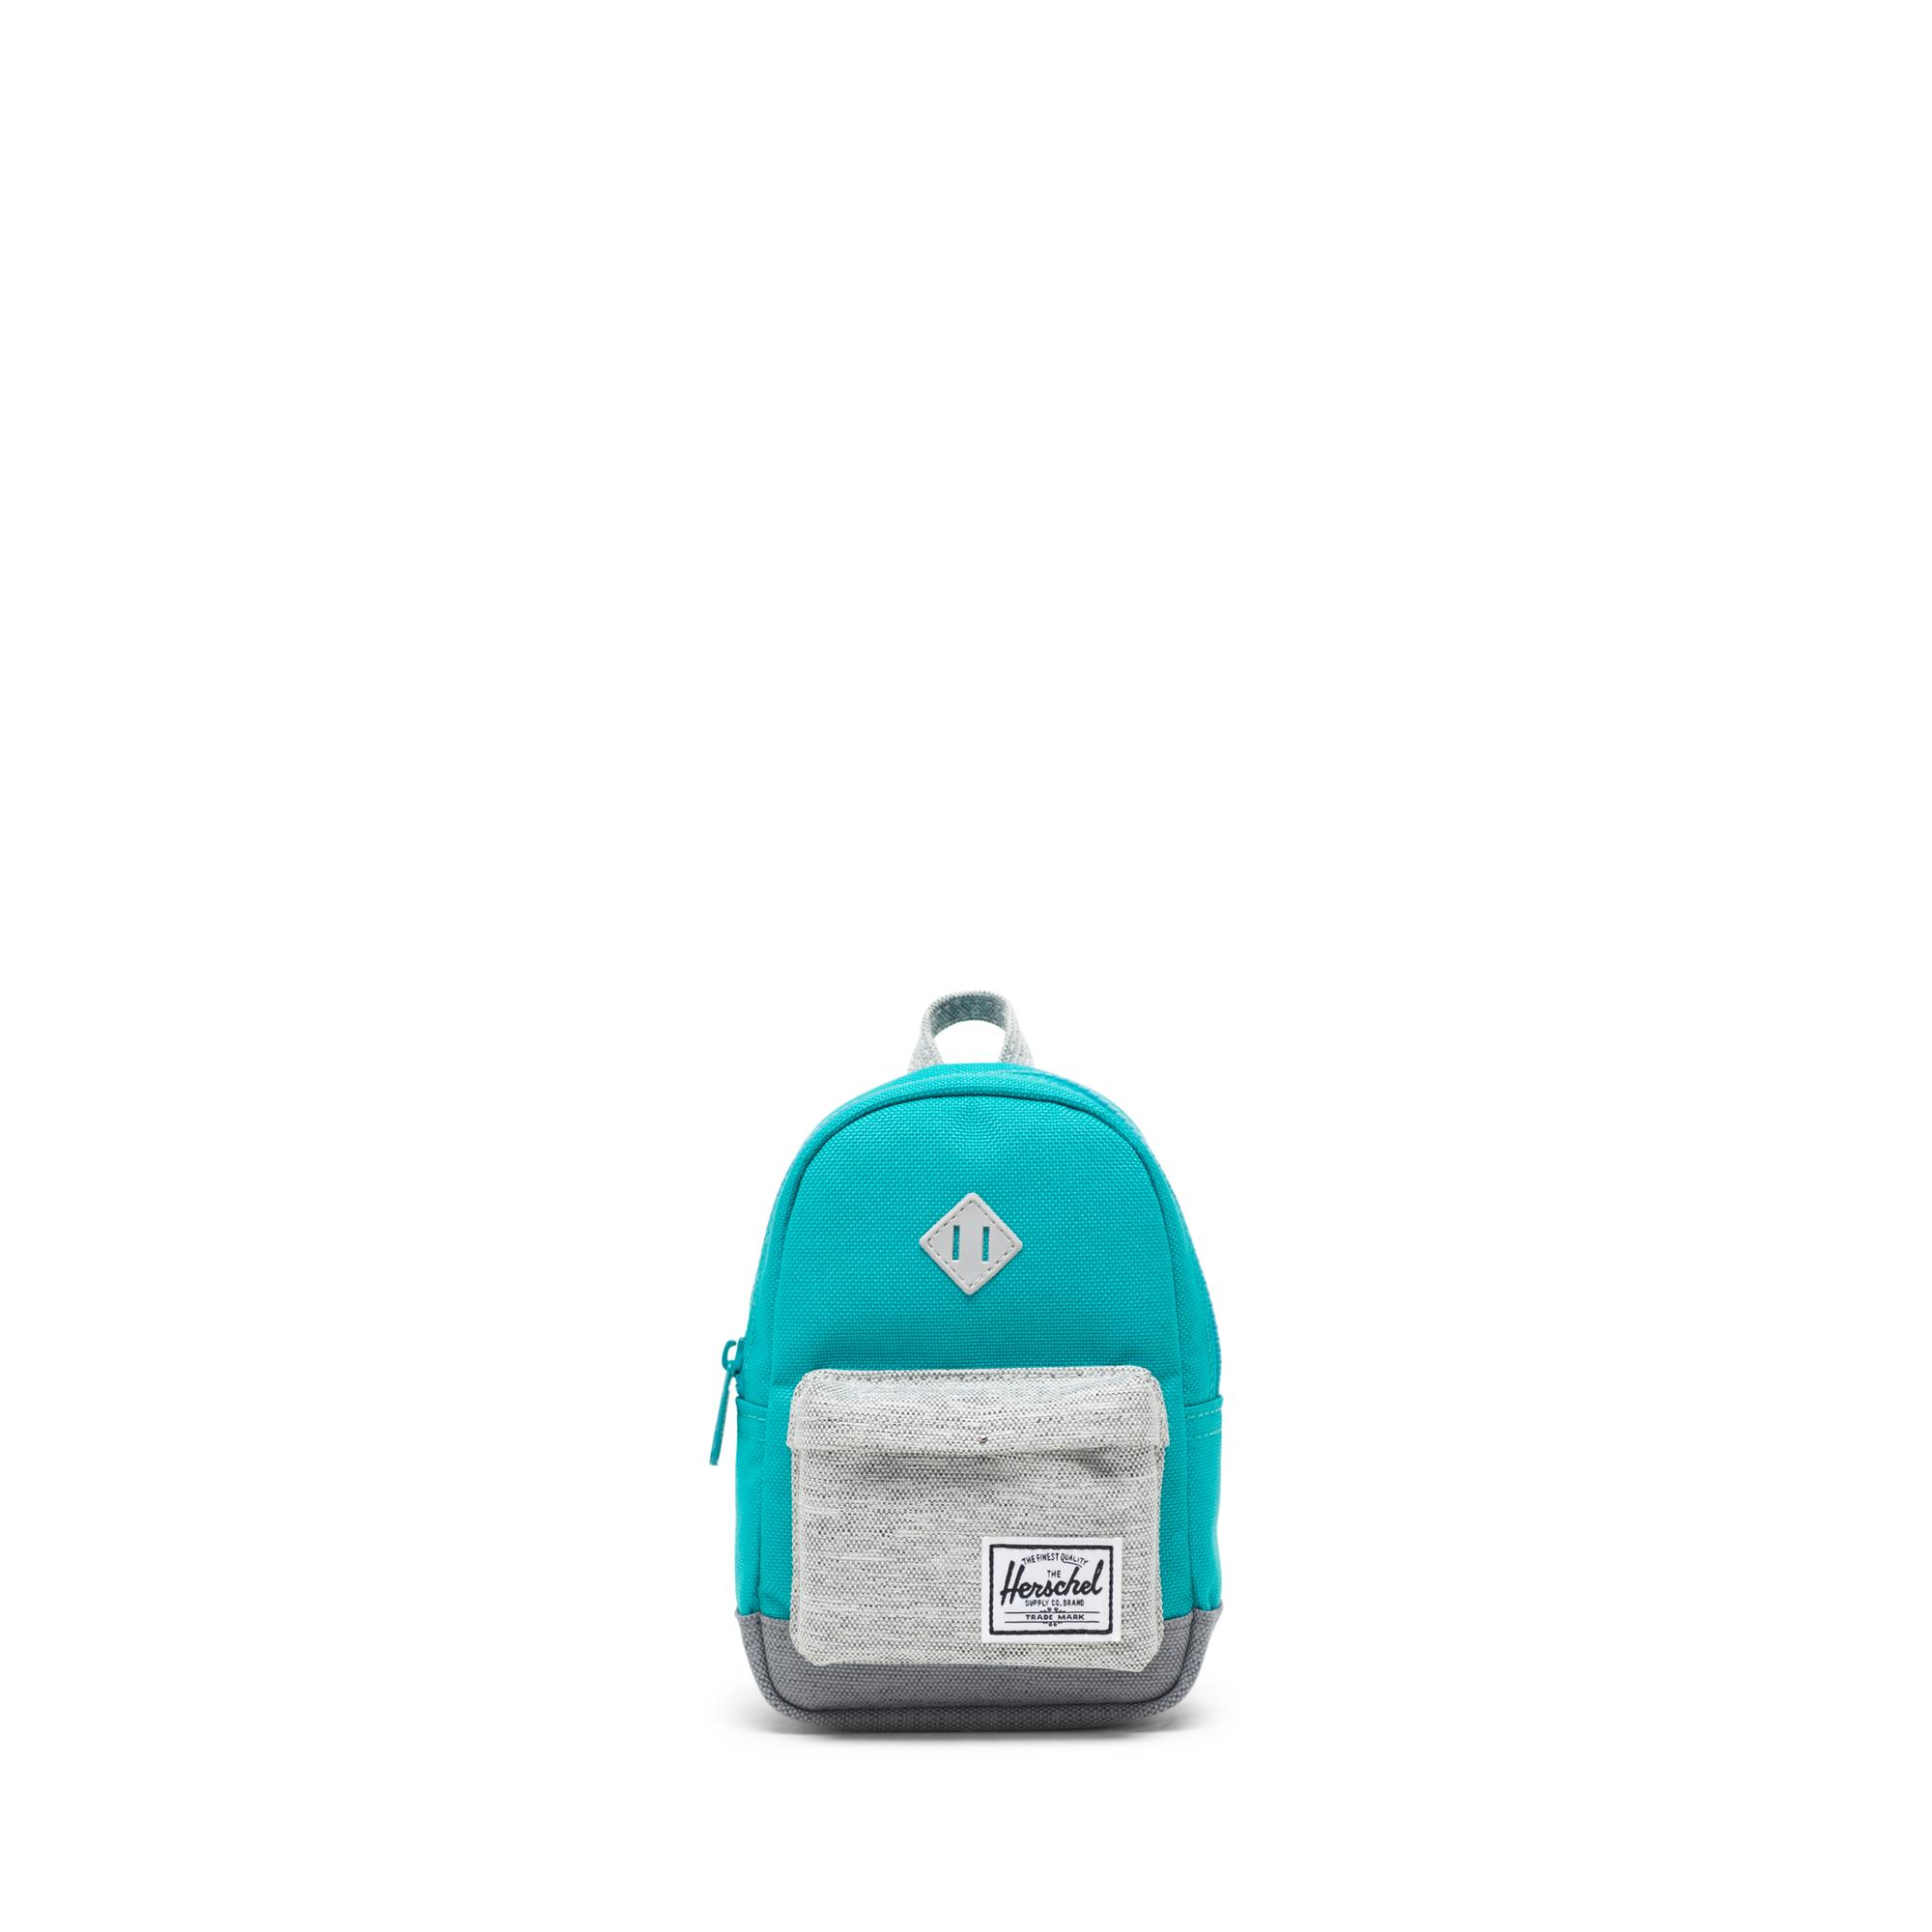 6c213d5a490 Heritage Backpack Mini